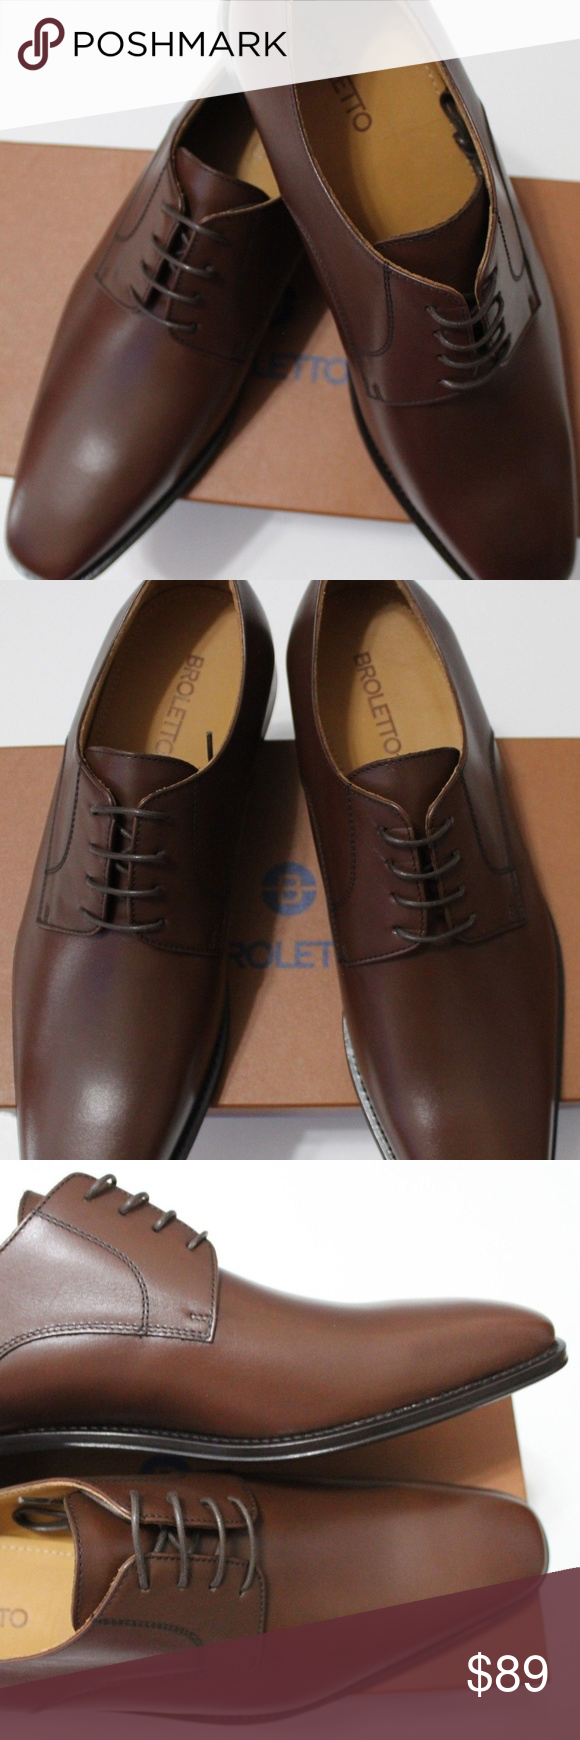 7b5a380d682 BROLETTO MRDAVID BROWN LEATHER DERBY SHOES BROLETTO MRDAVID BROWN LEATHER  DERBY SHOES Square Toe Topstitched welt